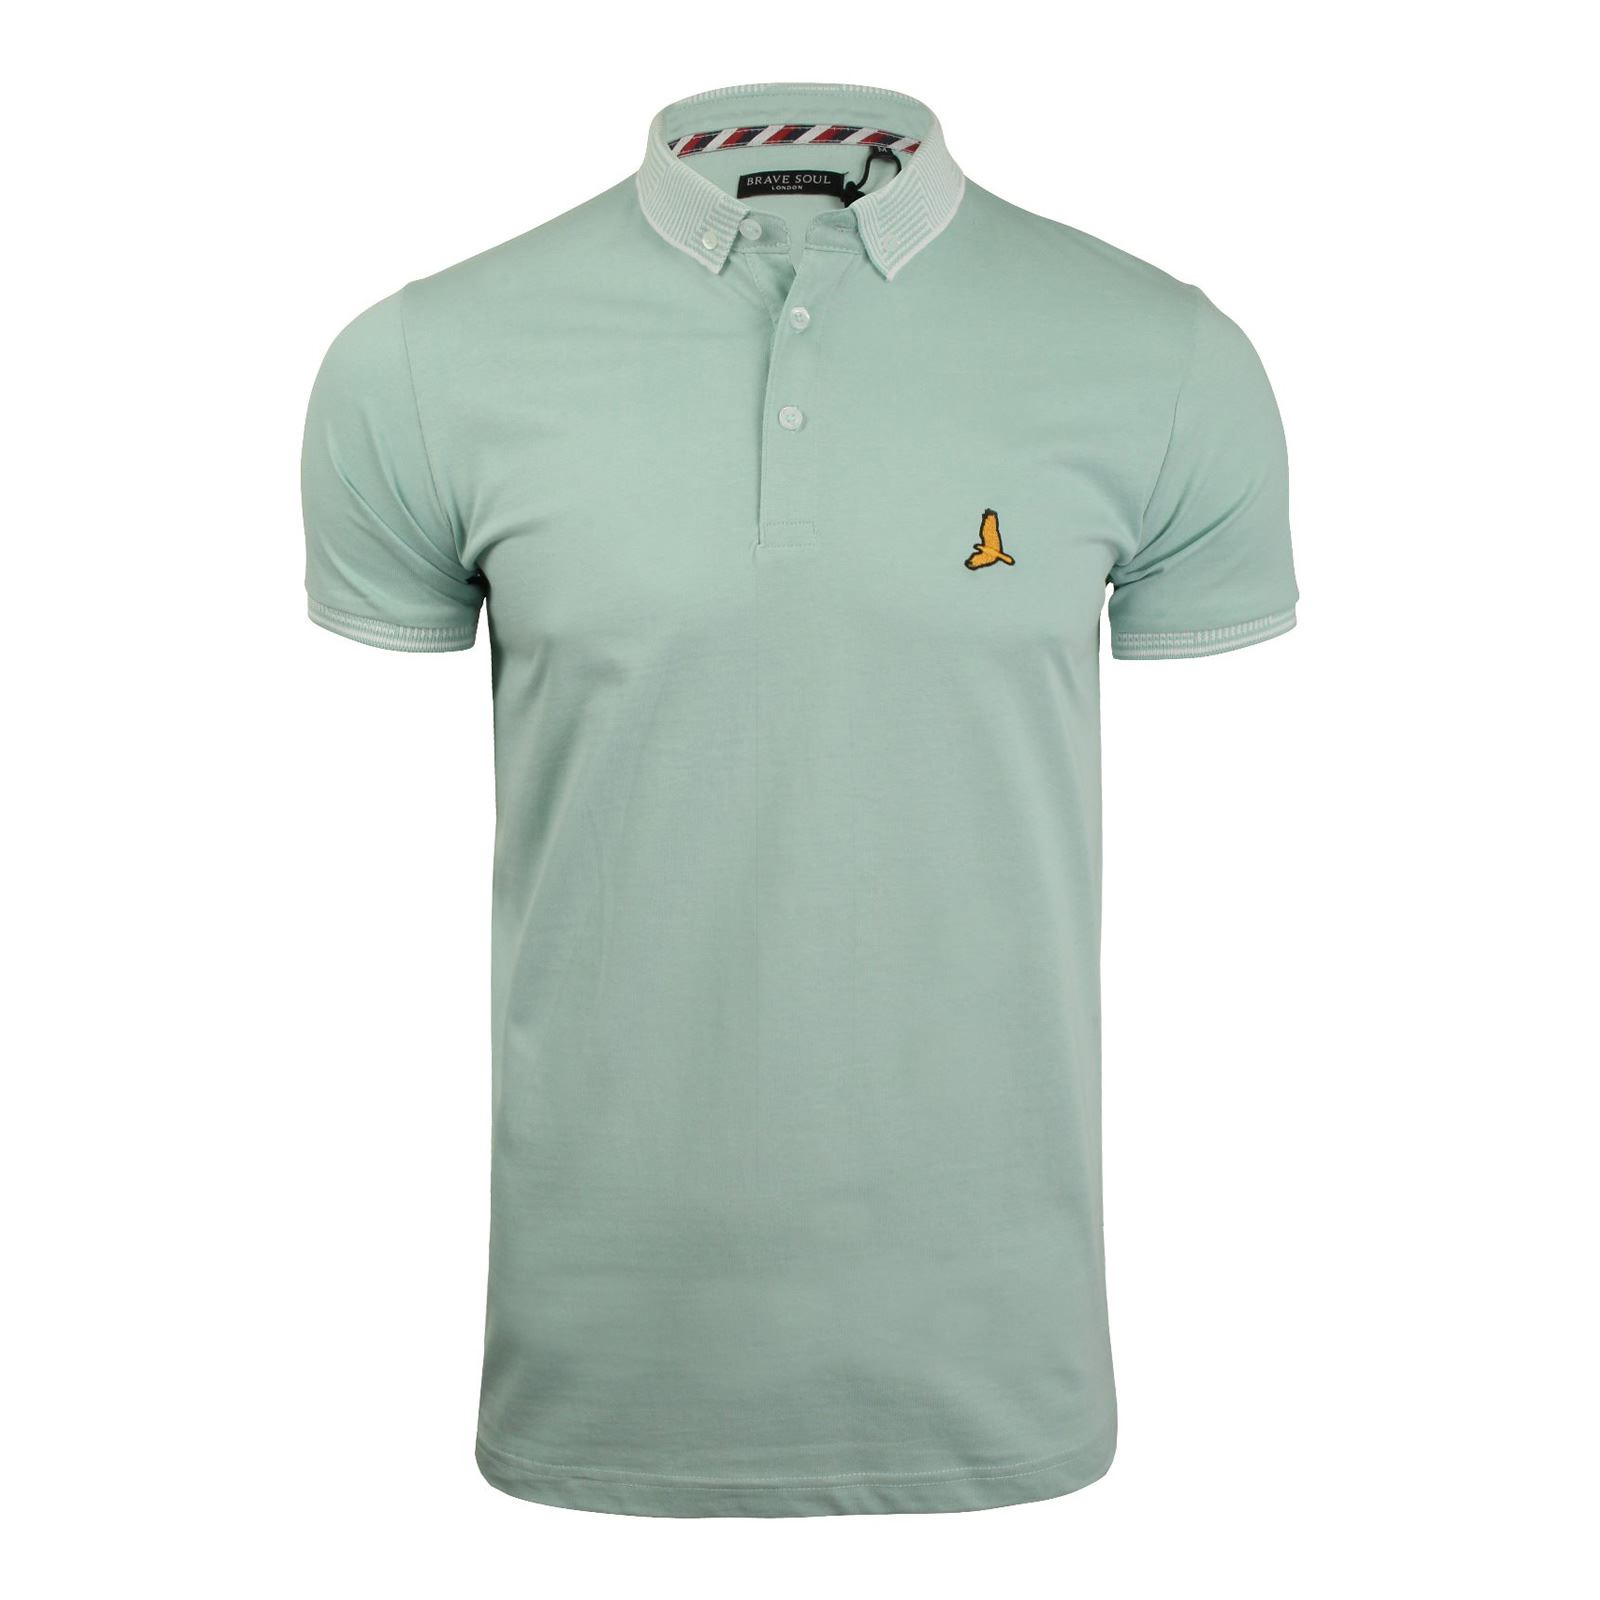 Brave-Soul-Glover-Mens-Polo-T-Shirt-Cotton-Collared-Short-Sleeve-Casual-Top thumbnail 47